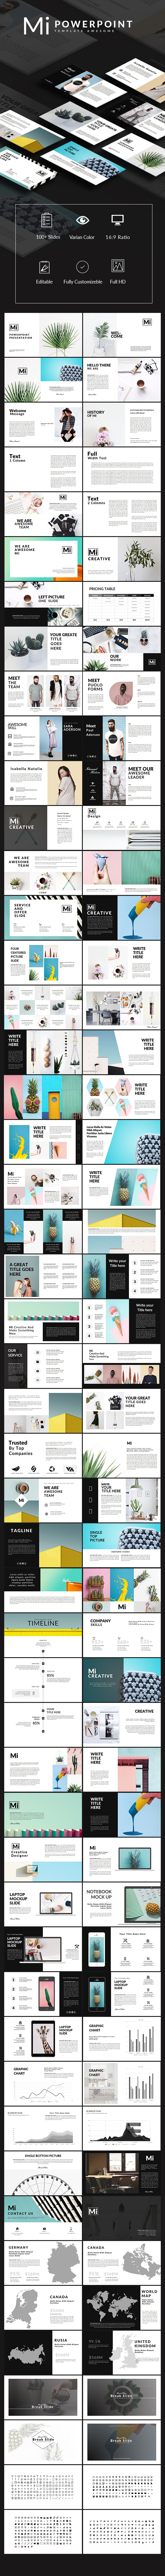 Mi powerpoint multipurpose template powerpoint templates student mi powerpoint multipurpose template powerpoint templates toneelgroepblik Image collections